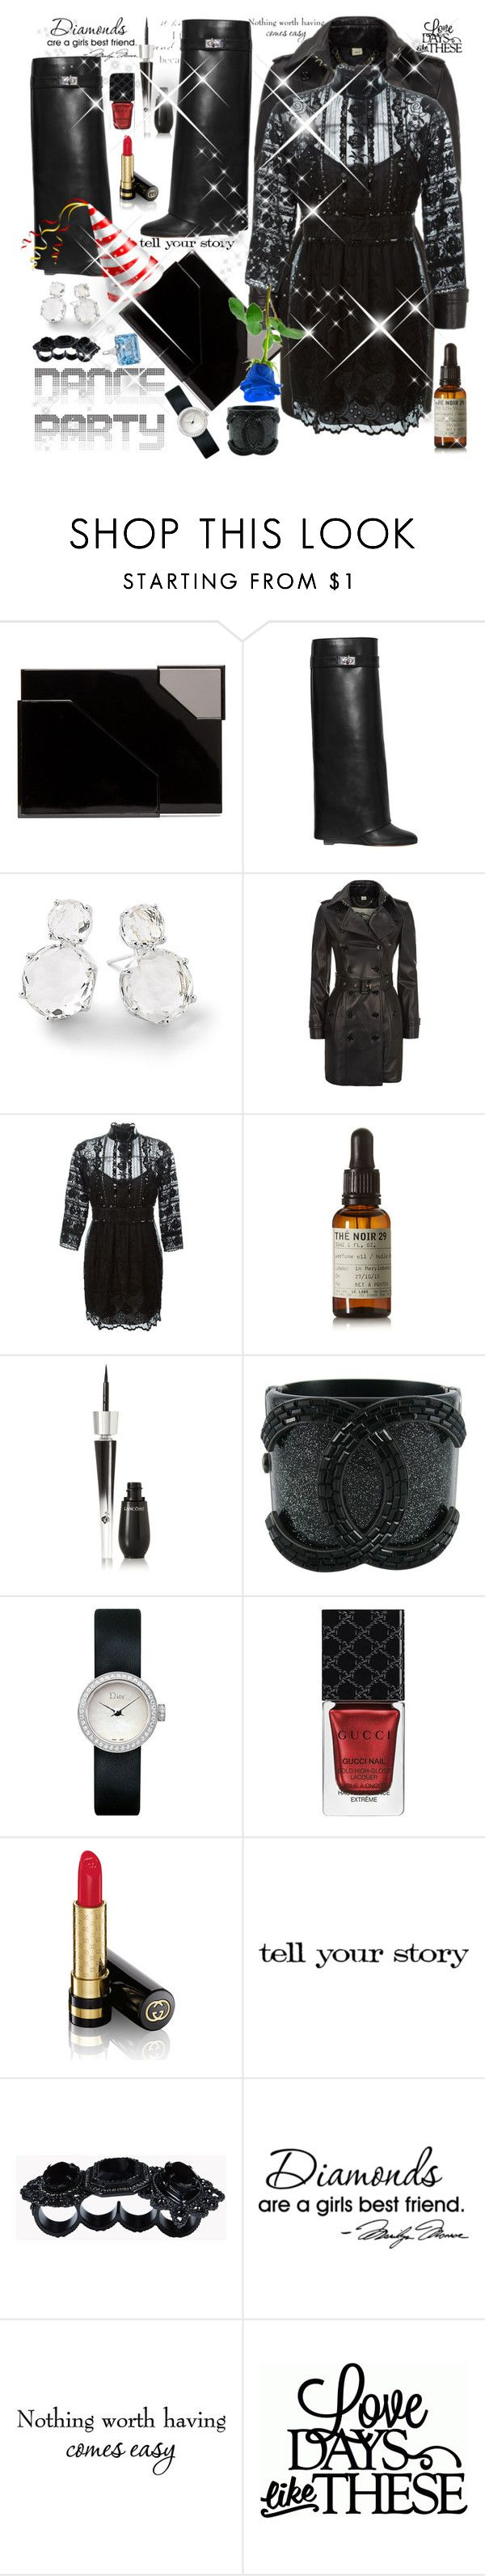 """I apologize, didn't know what to wear ,totally clueless😏"" by seanahr ❤ liked on Polyvore featuring Lee Savage, Givenchy, Ippolita, Burberry, Marc Jacobs, Le Labo, Lancôme, Chanel, Christian Dior and Gucci"